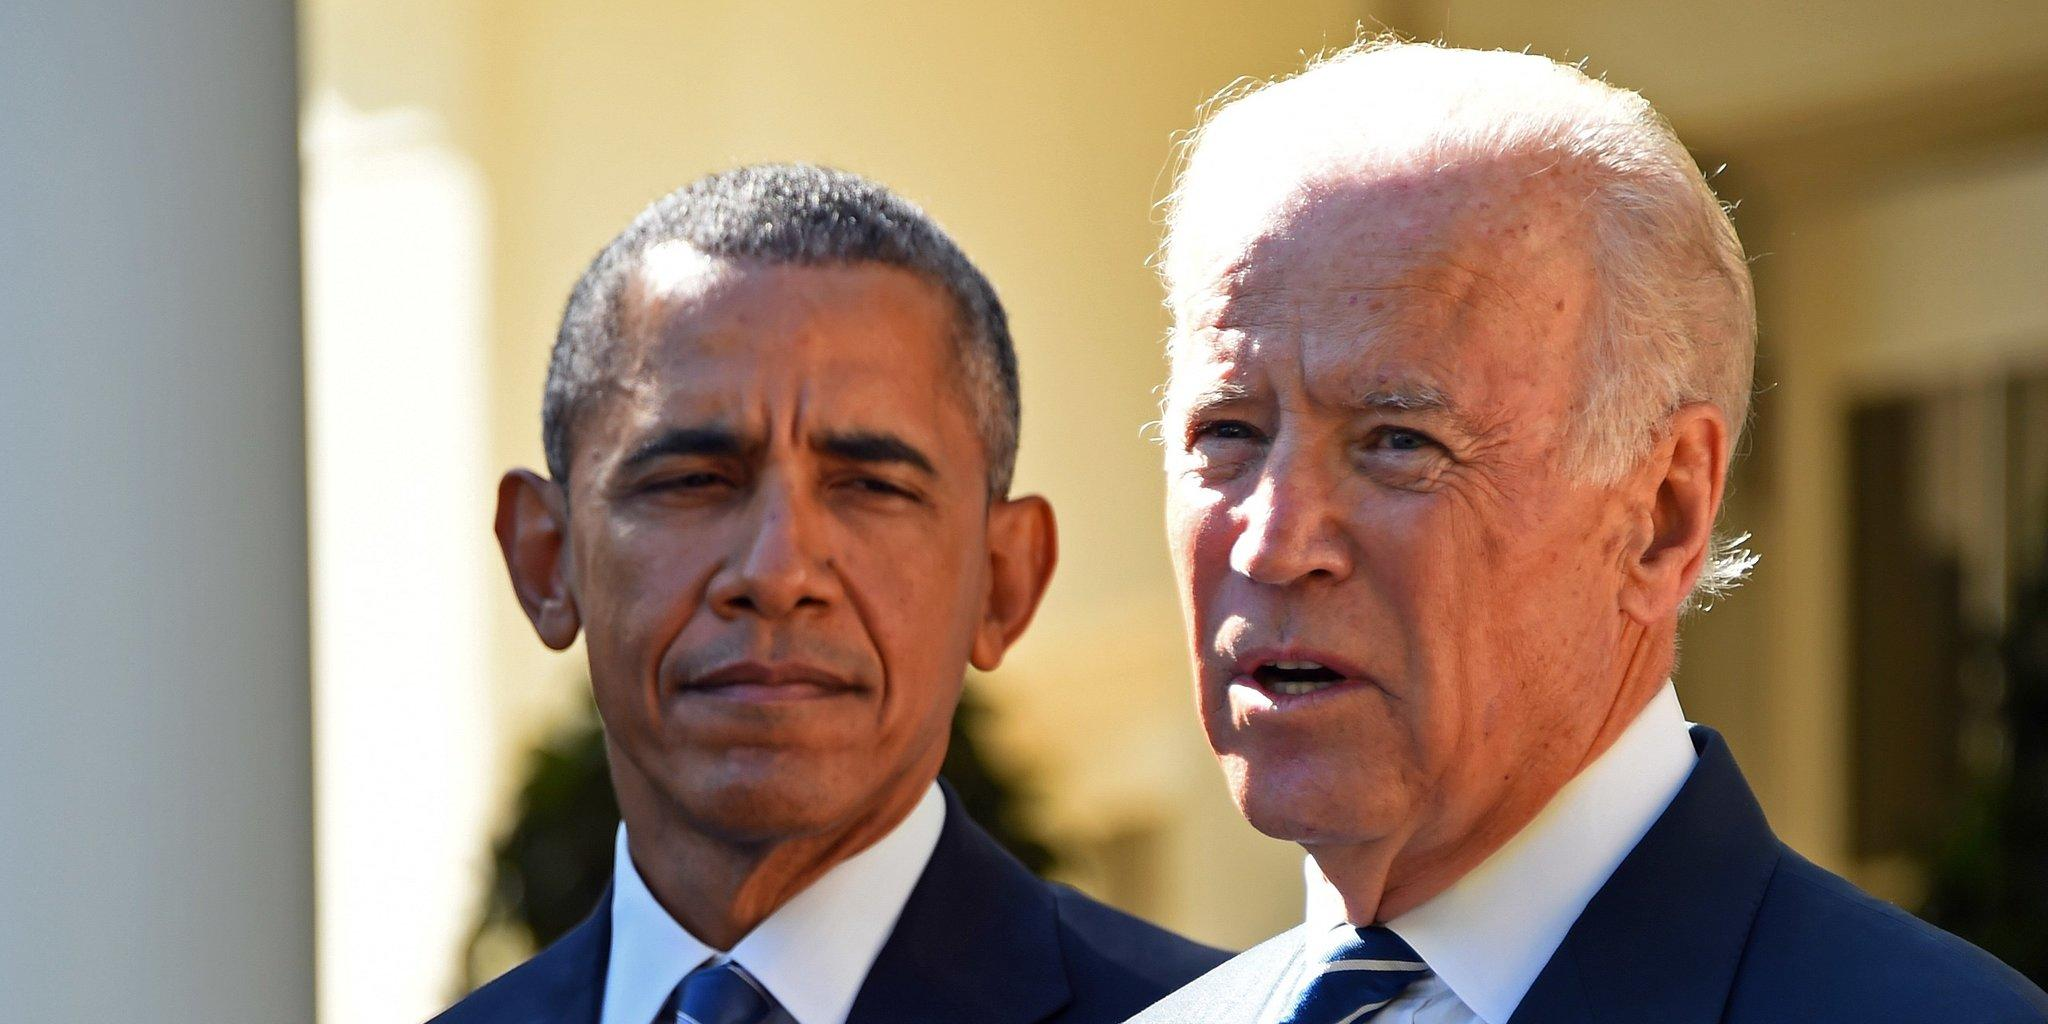 Barack Obama Jokes That Michelle Would 'Leave' Him If He Joined Joe Biden's Cabinet - Here's Why!